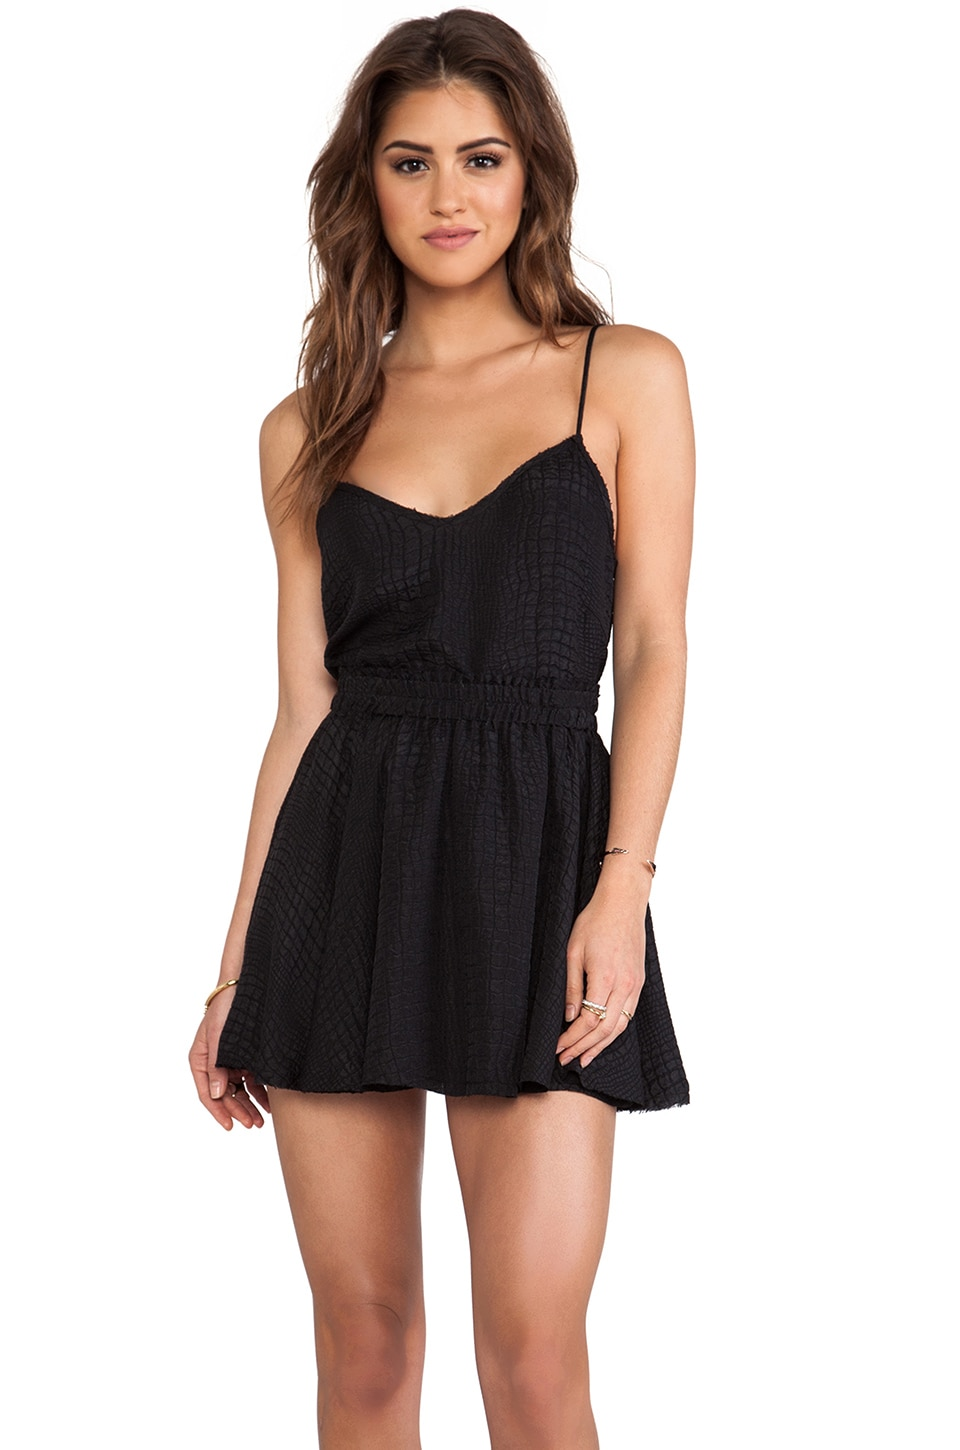 LoveShackFancy Crop Cami in Black